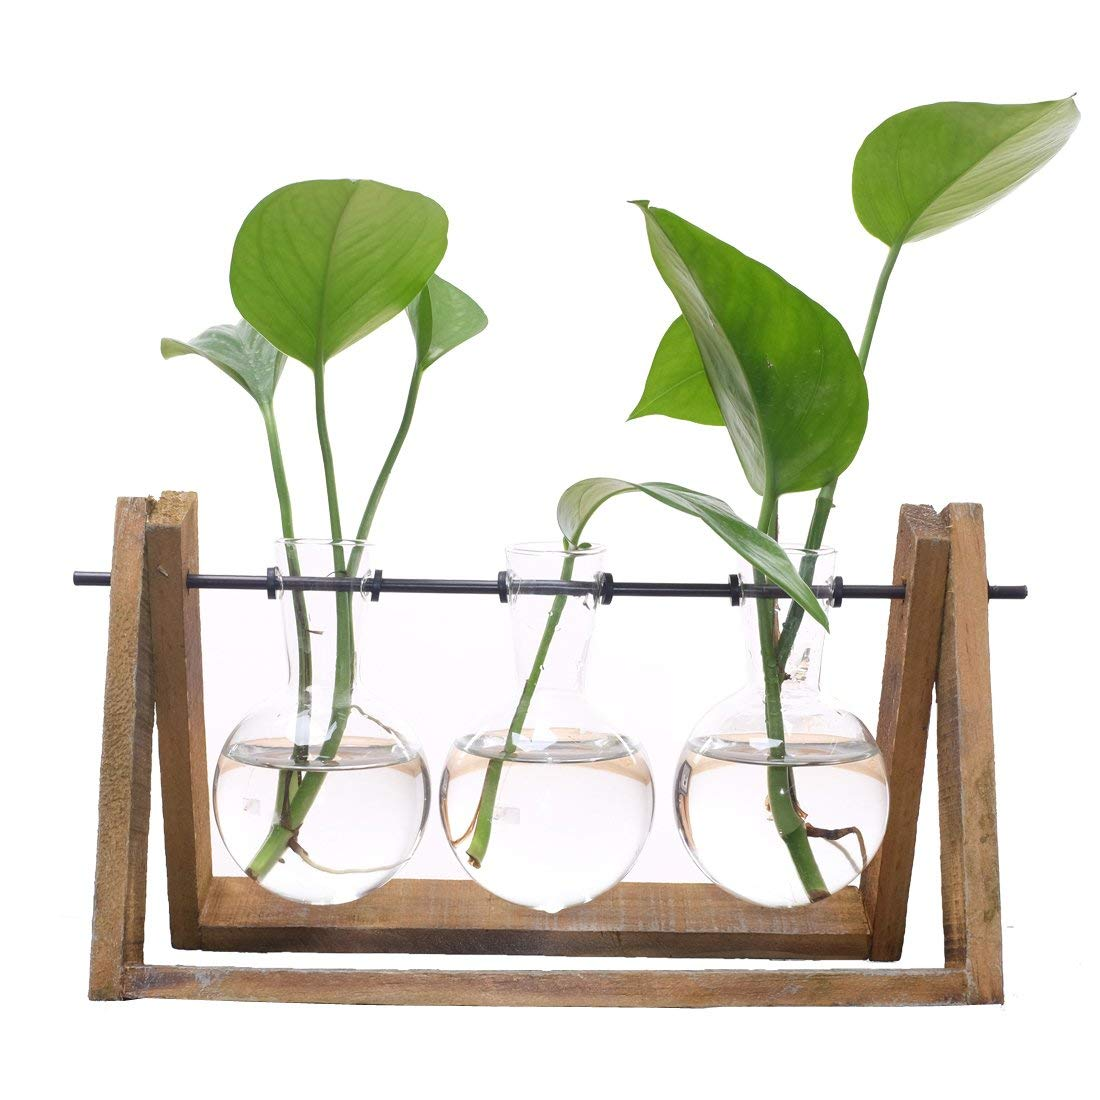 Meigar Plant Terrarium with Wooden Stand Glass Vase Holder for Home Decoration,Scindapsus Container (3 Terrariums)